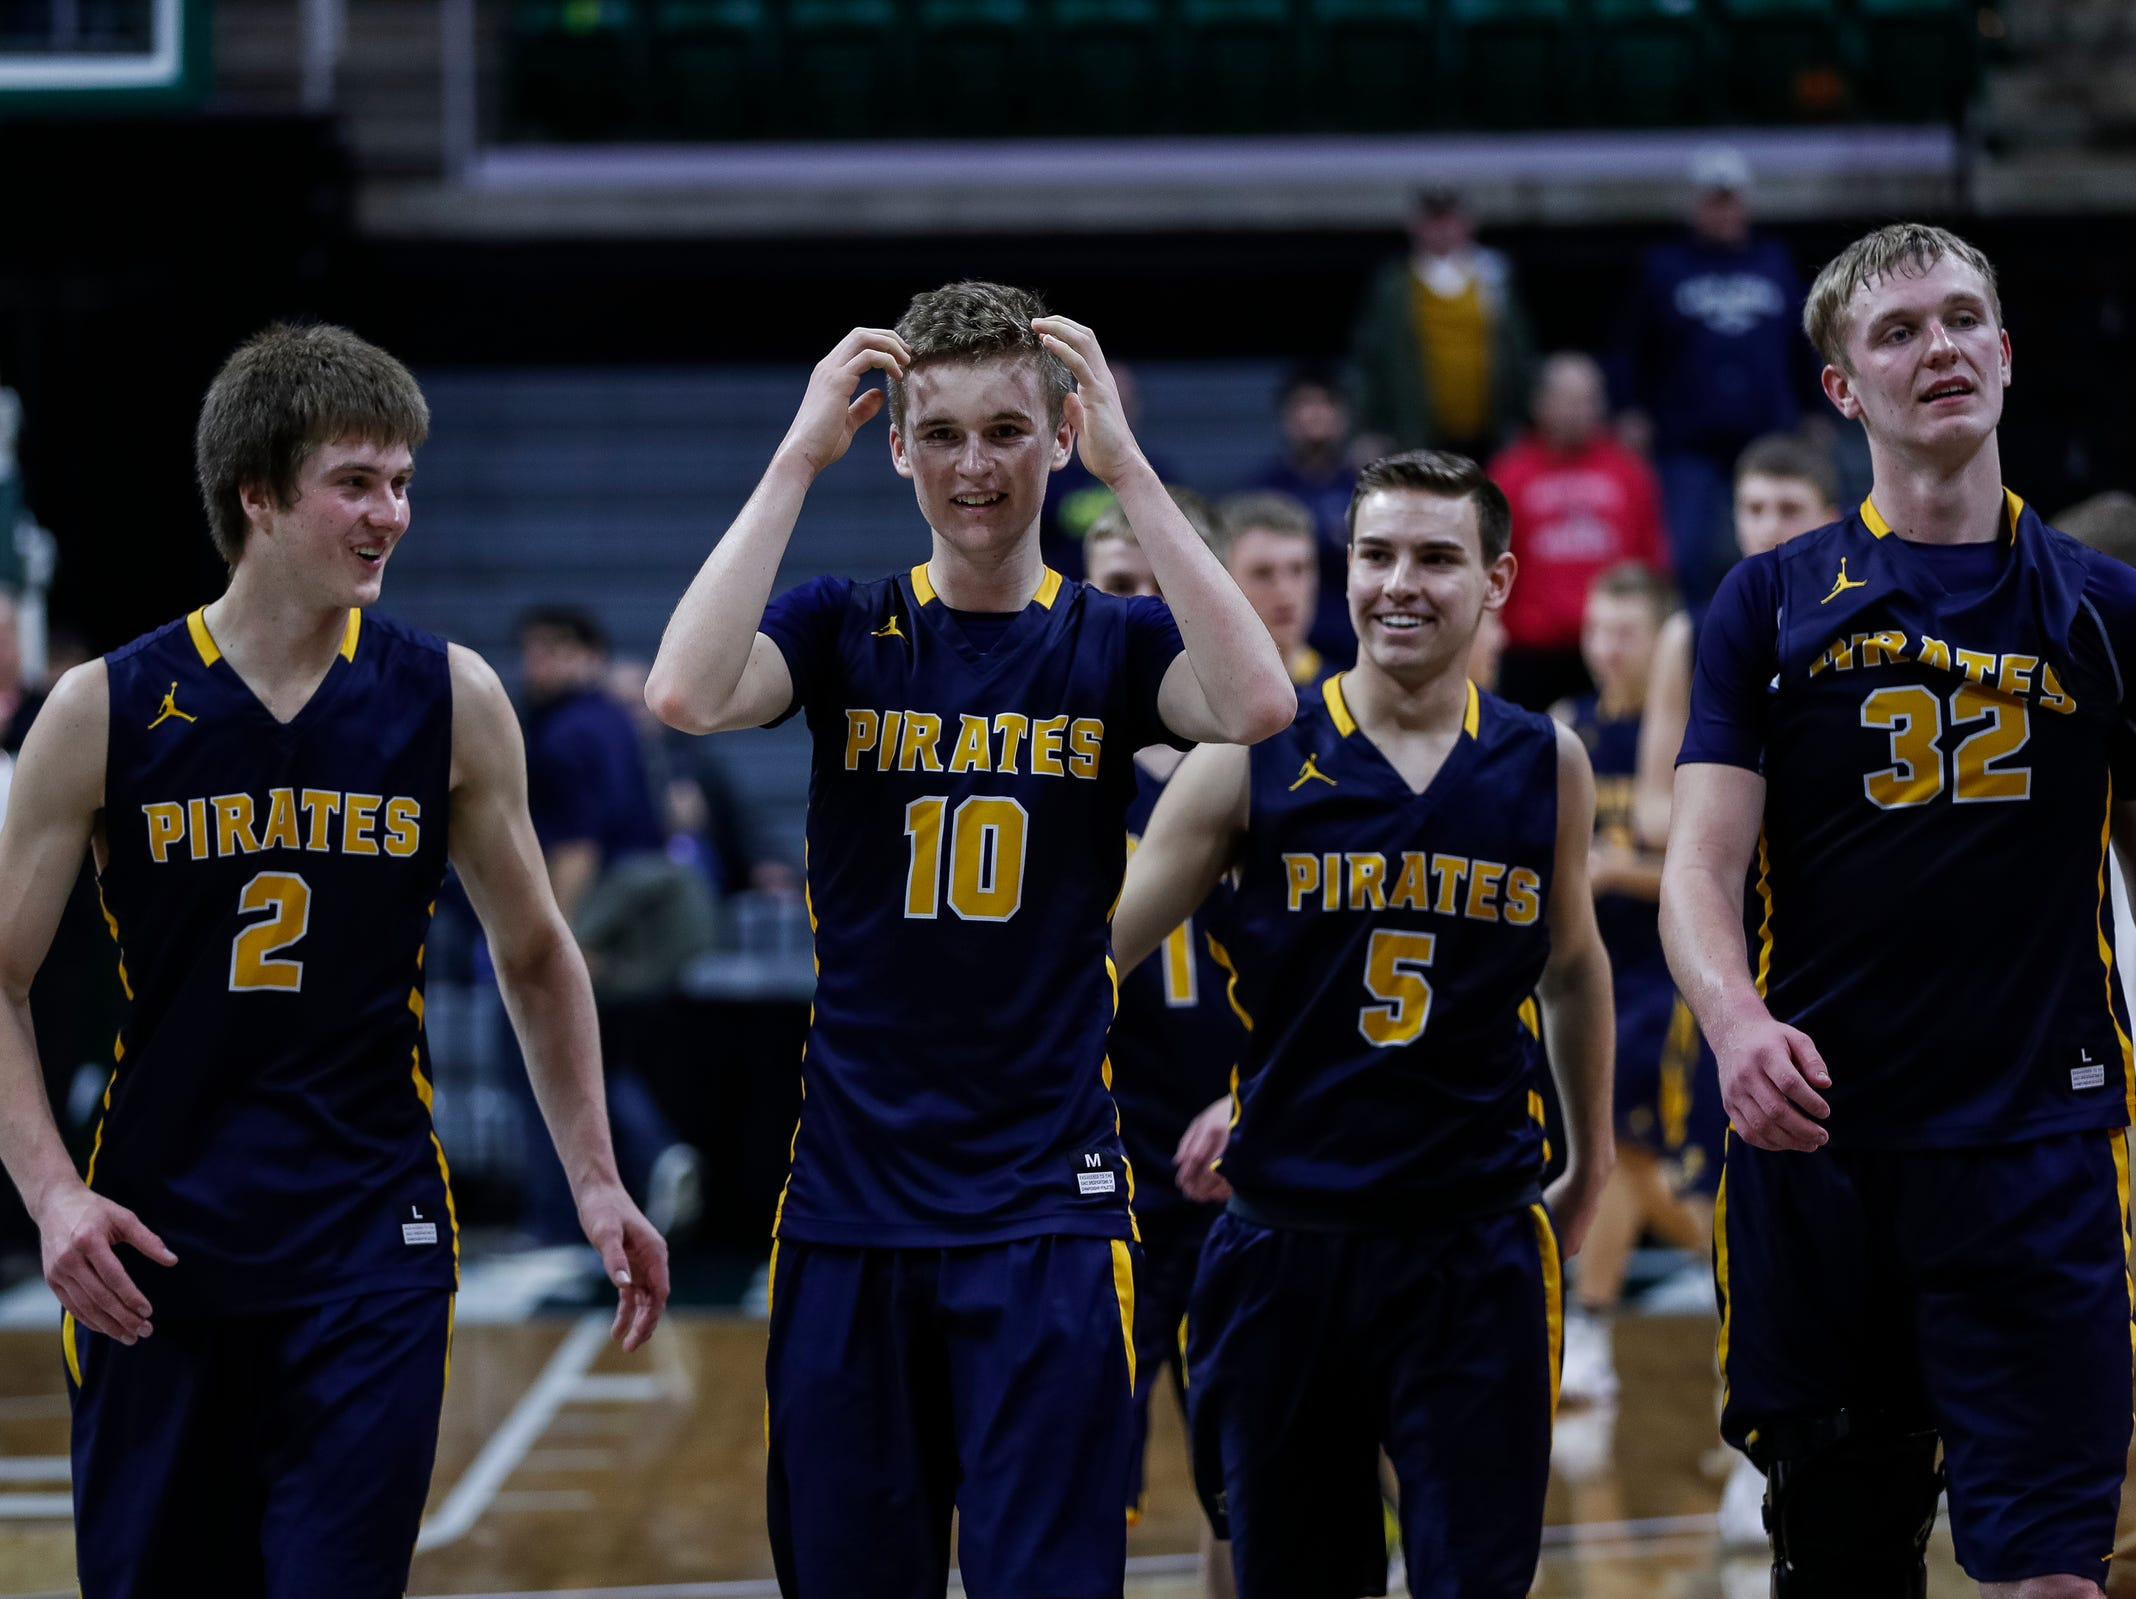 Pewamo-Westphalia players Nathan Wirth (2), Hunter Hengaesbach (10), Evyn Moffitt (5), and Andre Smith (32) celebrate their victory against Erie-Mason at the MHSAA Division 3 semifinal at the Breslin Center in East Lansing, Thursday, March 14, 2019.